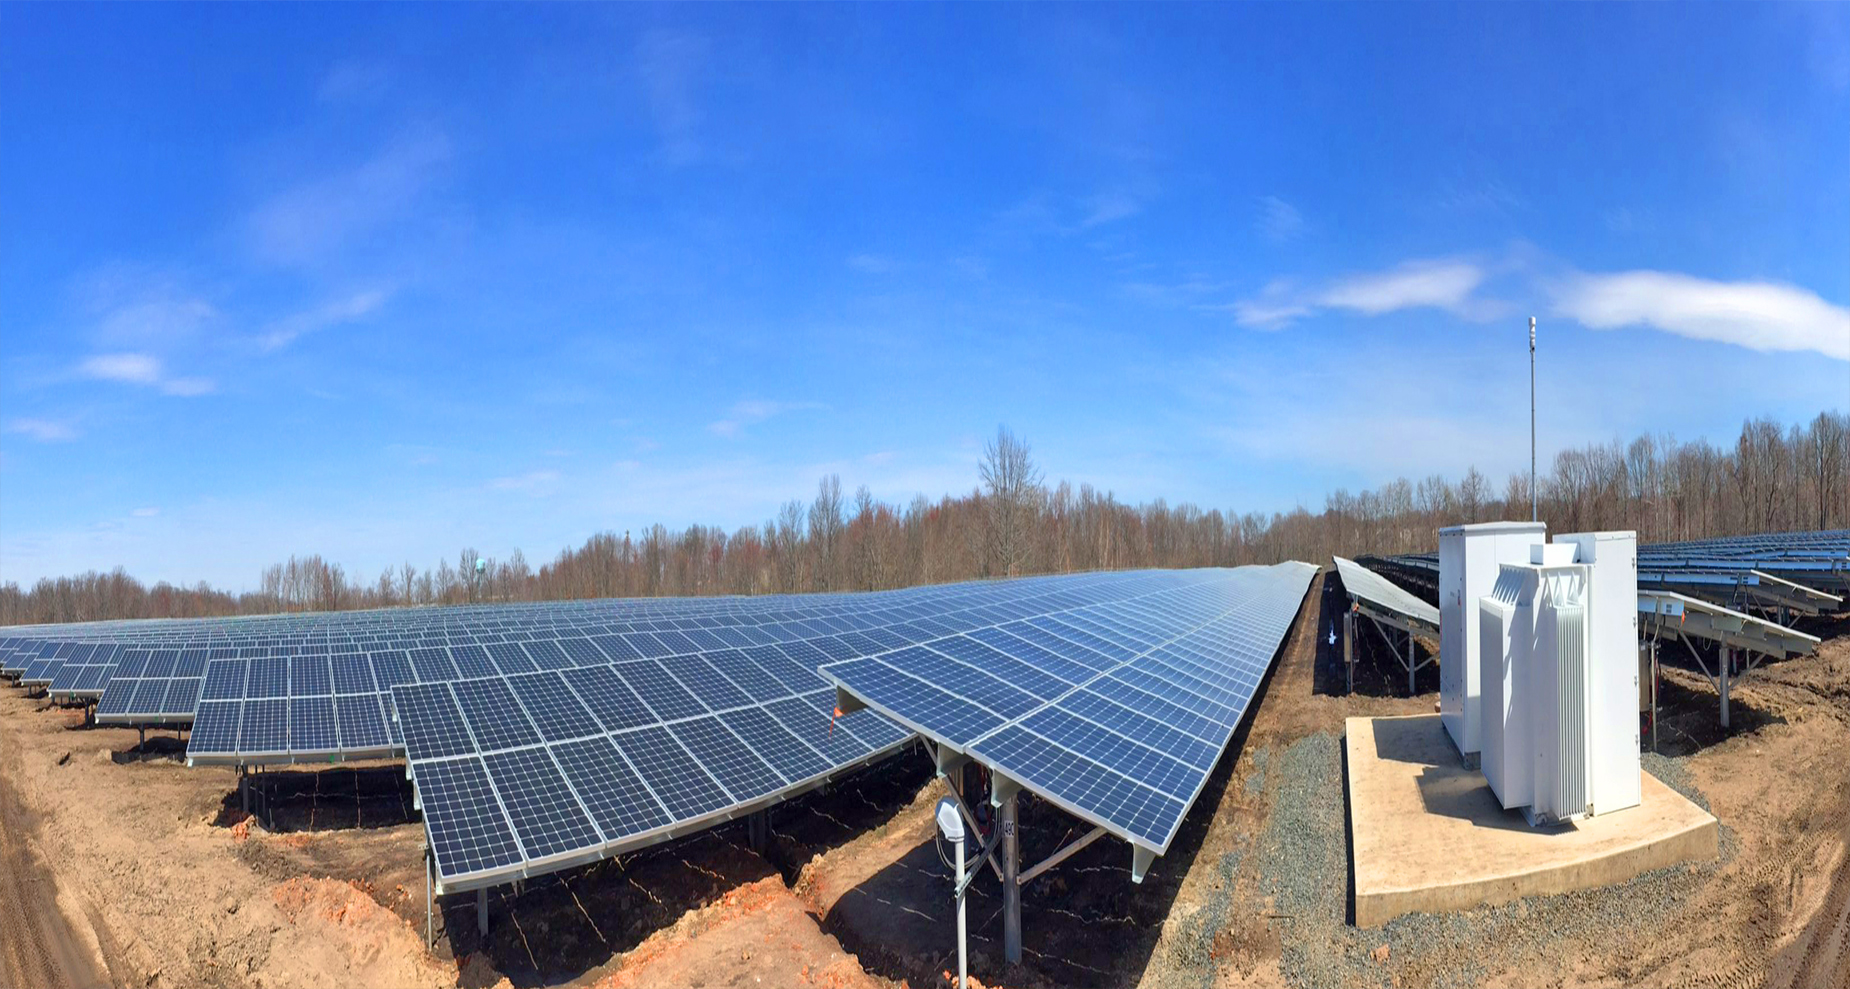 Conti Solar Selected to Provide EPC Services for NJR Clean Energy Ventures